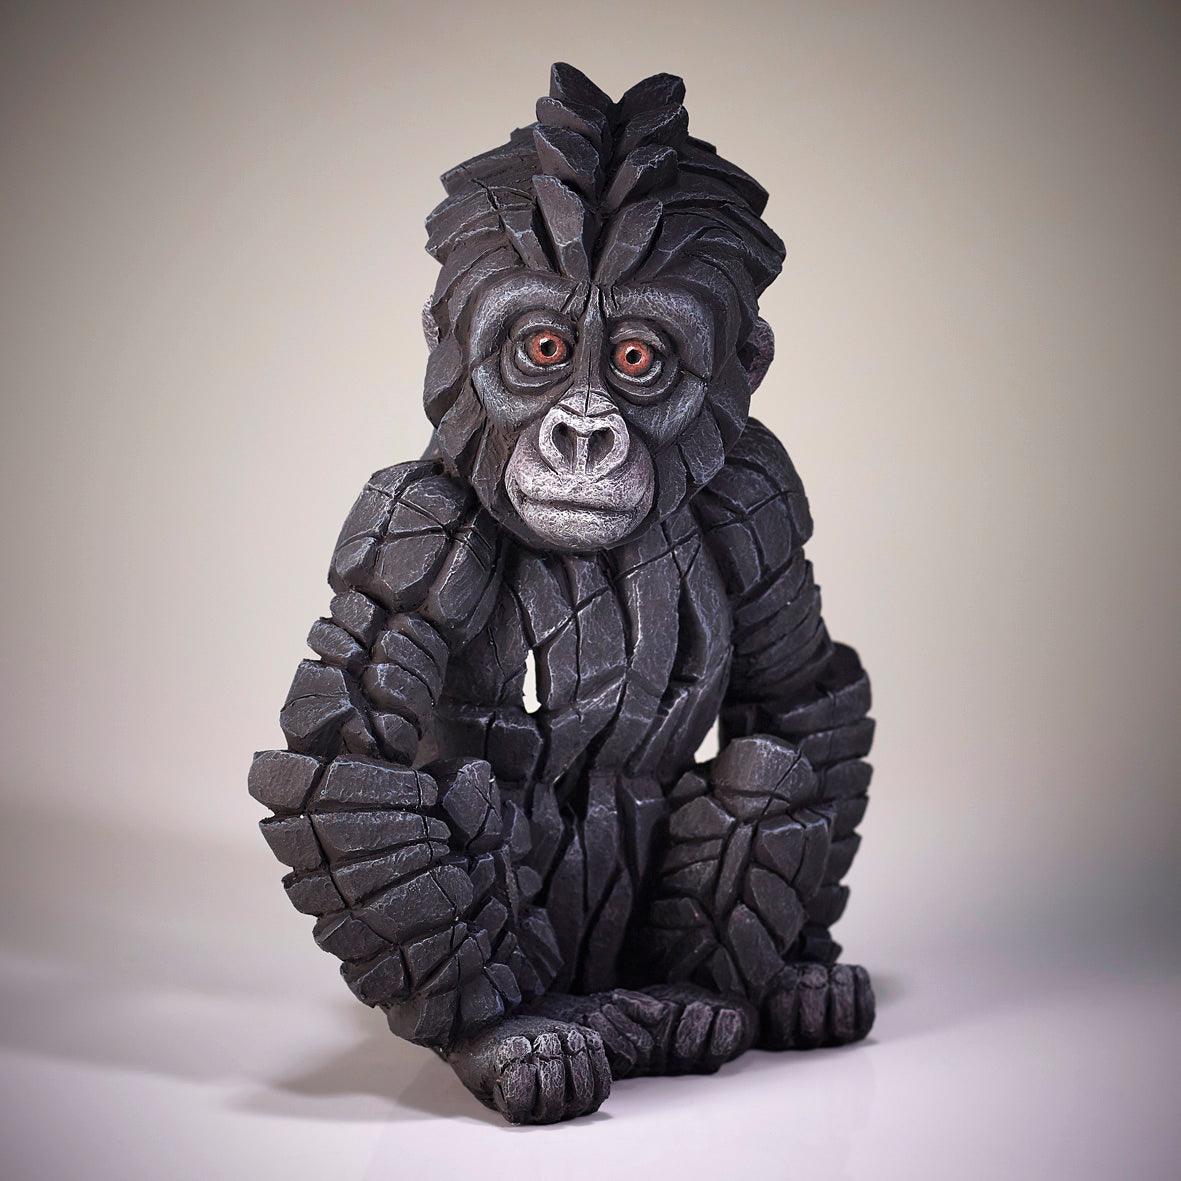 Edge Sculpture Baby Gorilla by Matt Buckley